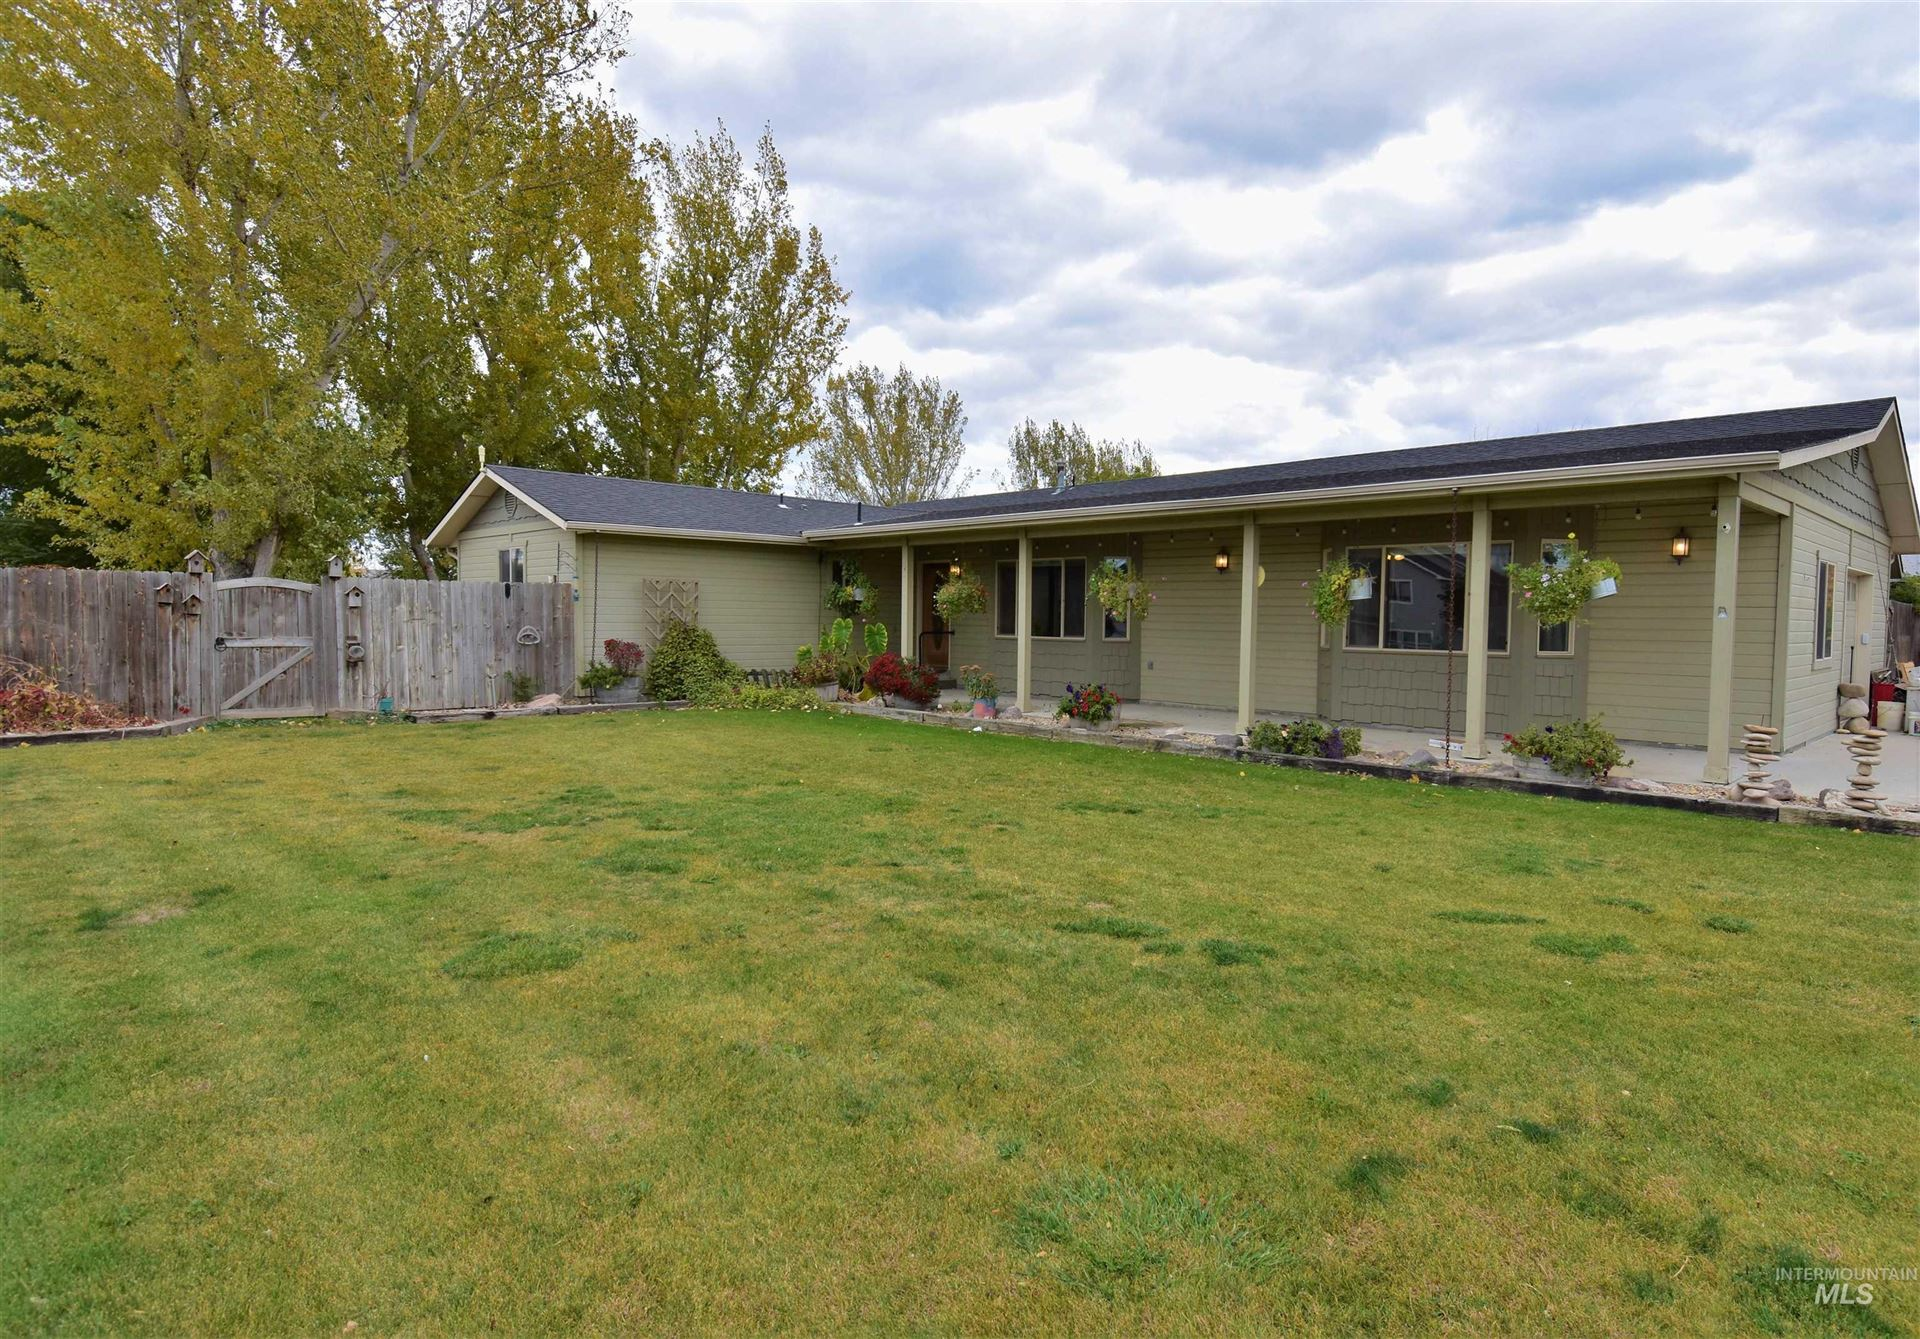 Photo of 1108 E Ustick Rd., Caldwell, ID 83607 (MLS # 98823270)